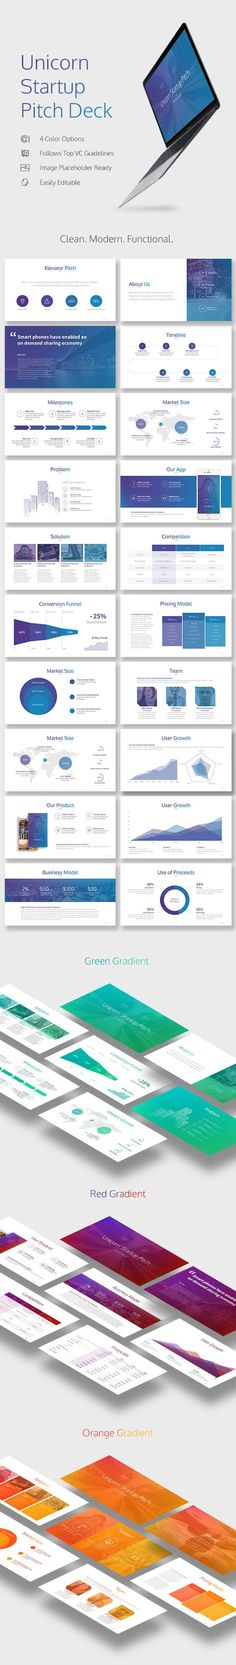 Unicorn Startup Pitch Deck  - Pitch Deck PowerPoint Templates